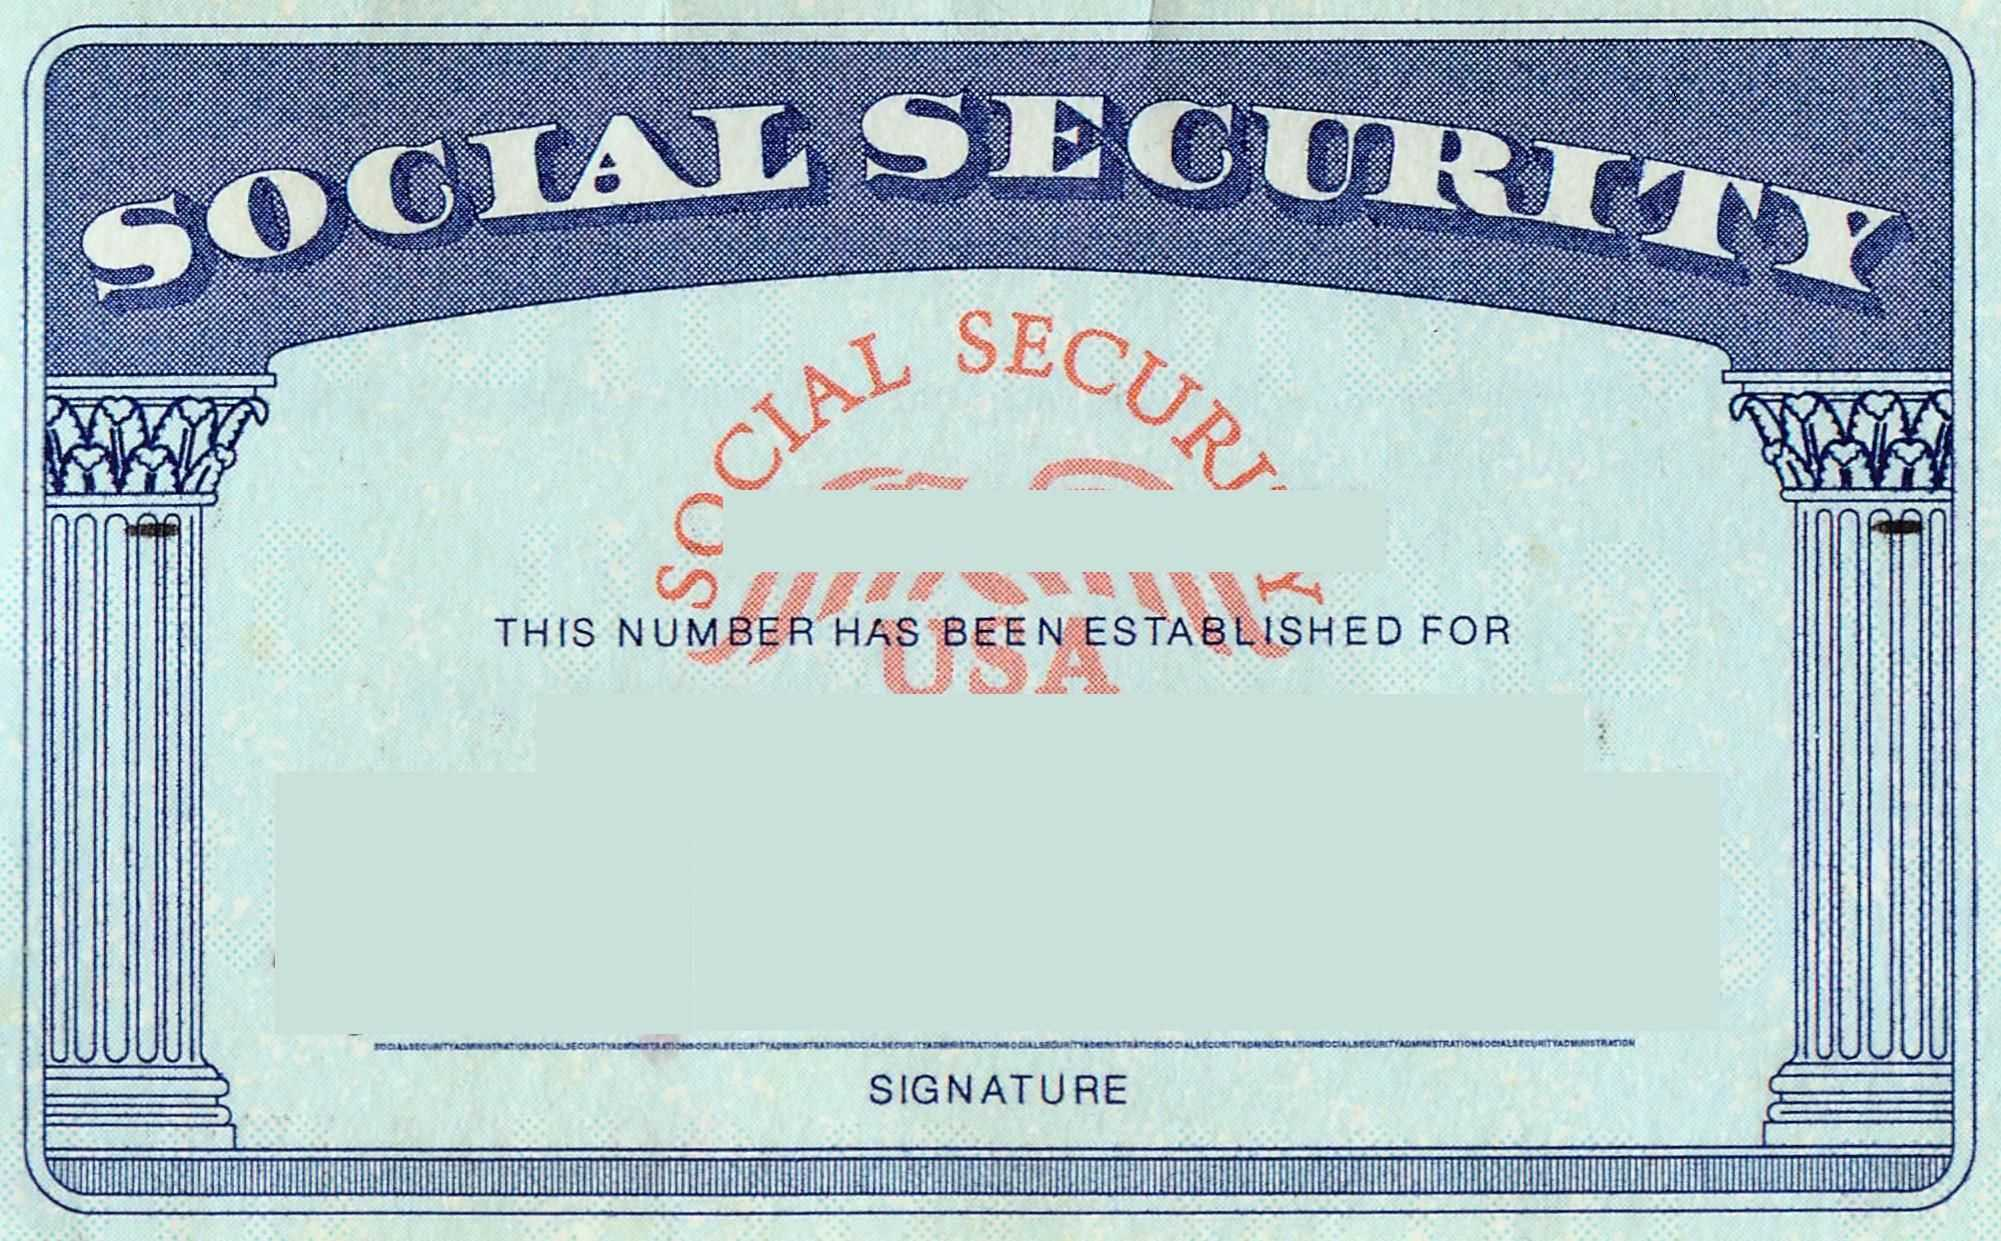 Ss Card Template - Magdalene Project Inside Social Security Card Template Pdf